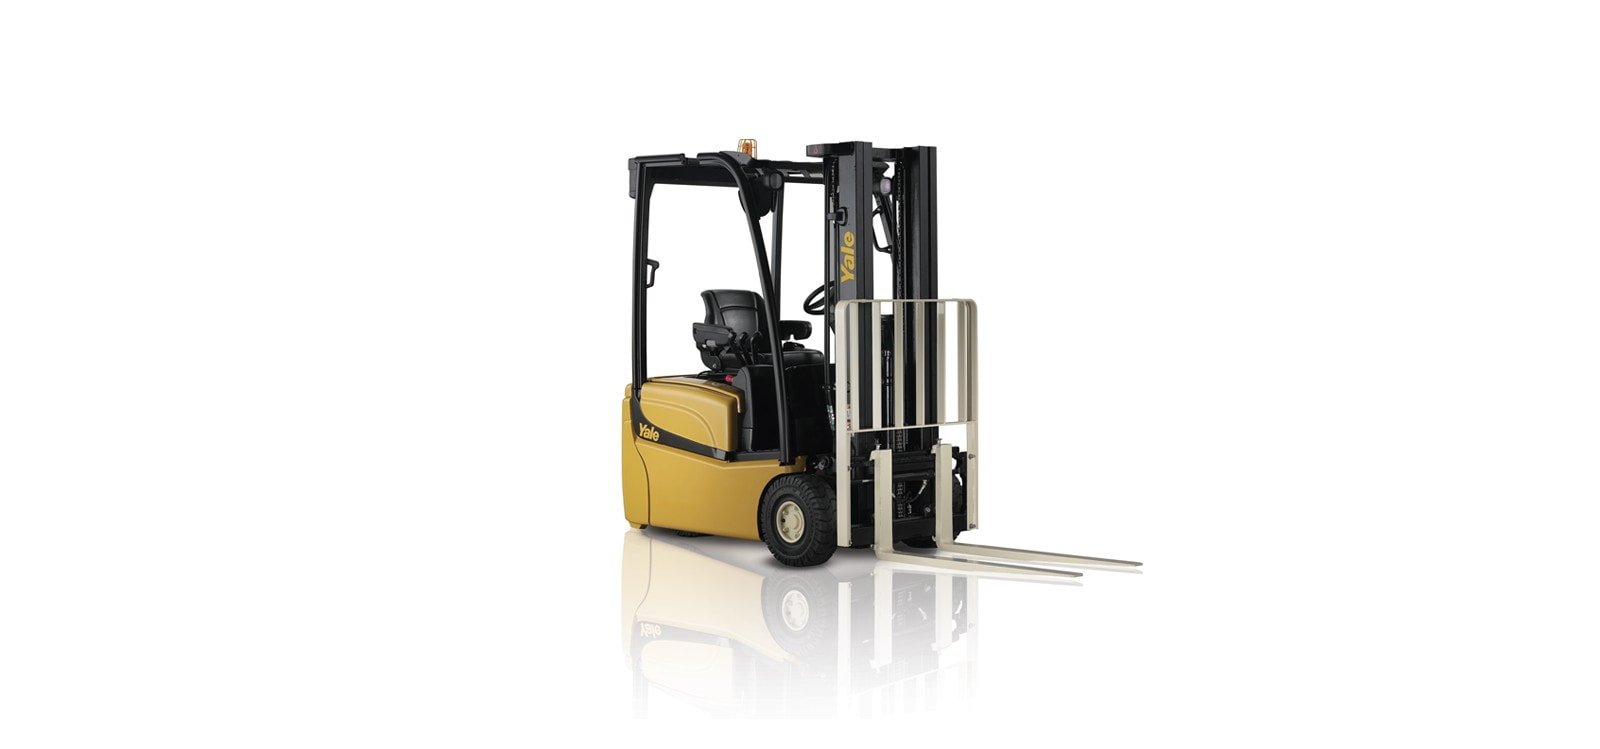 Best 3 Wheel Electric Forklift in India